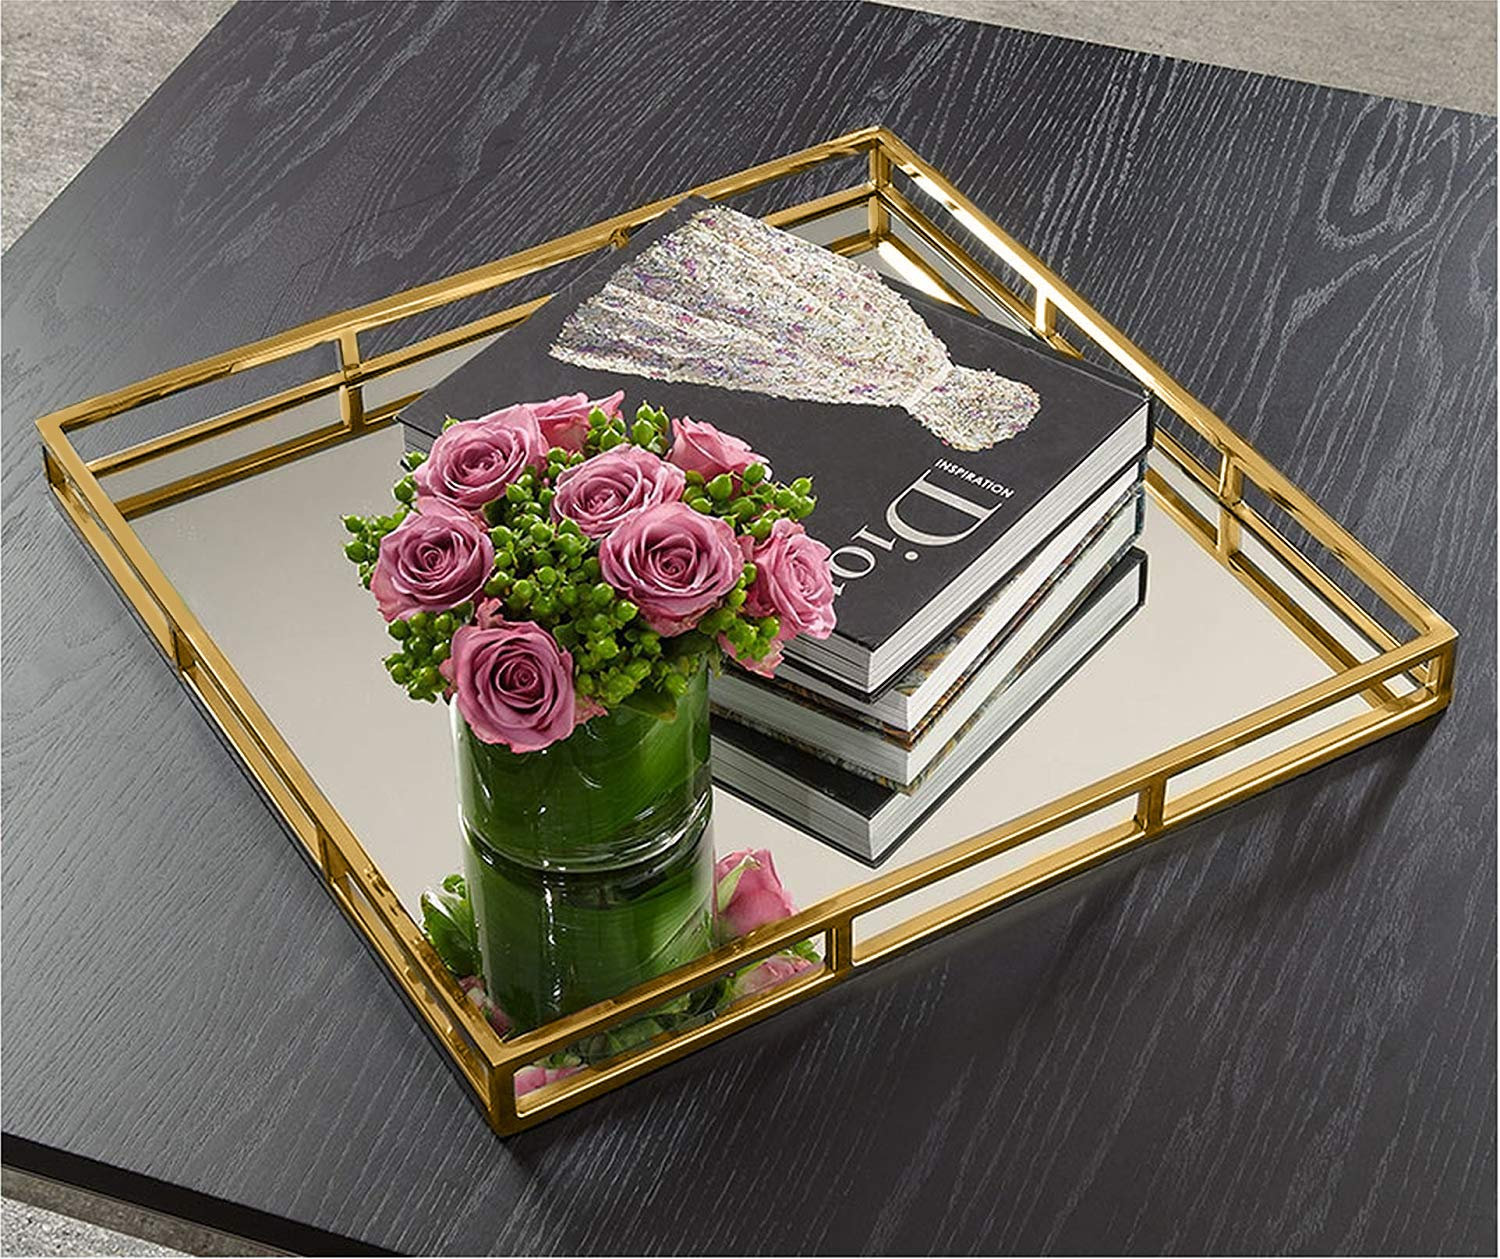 Elegant Mirror Vanity Tray, Gold Perfume Tray with Side Rails Ideal for Makeup, Jewelry and Bathroom Counter - Square Mirrored Tray Makes A Great Gift - 16 Inch by Le'raze